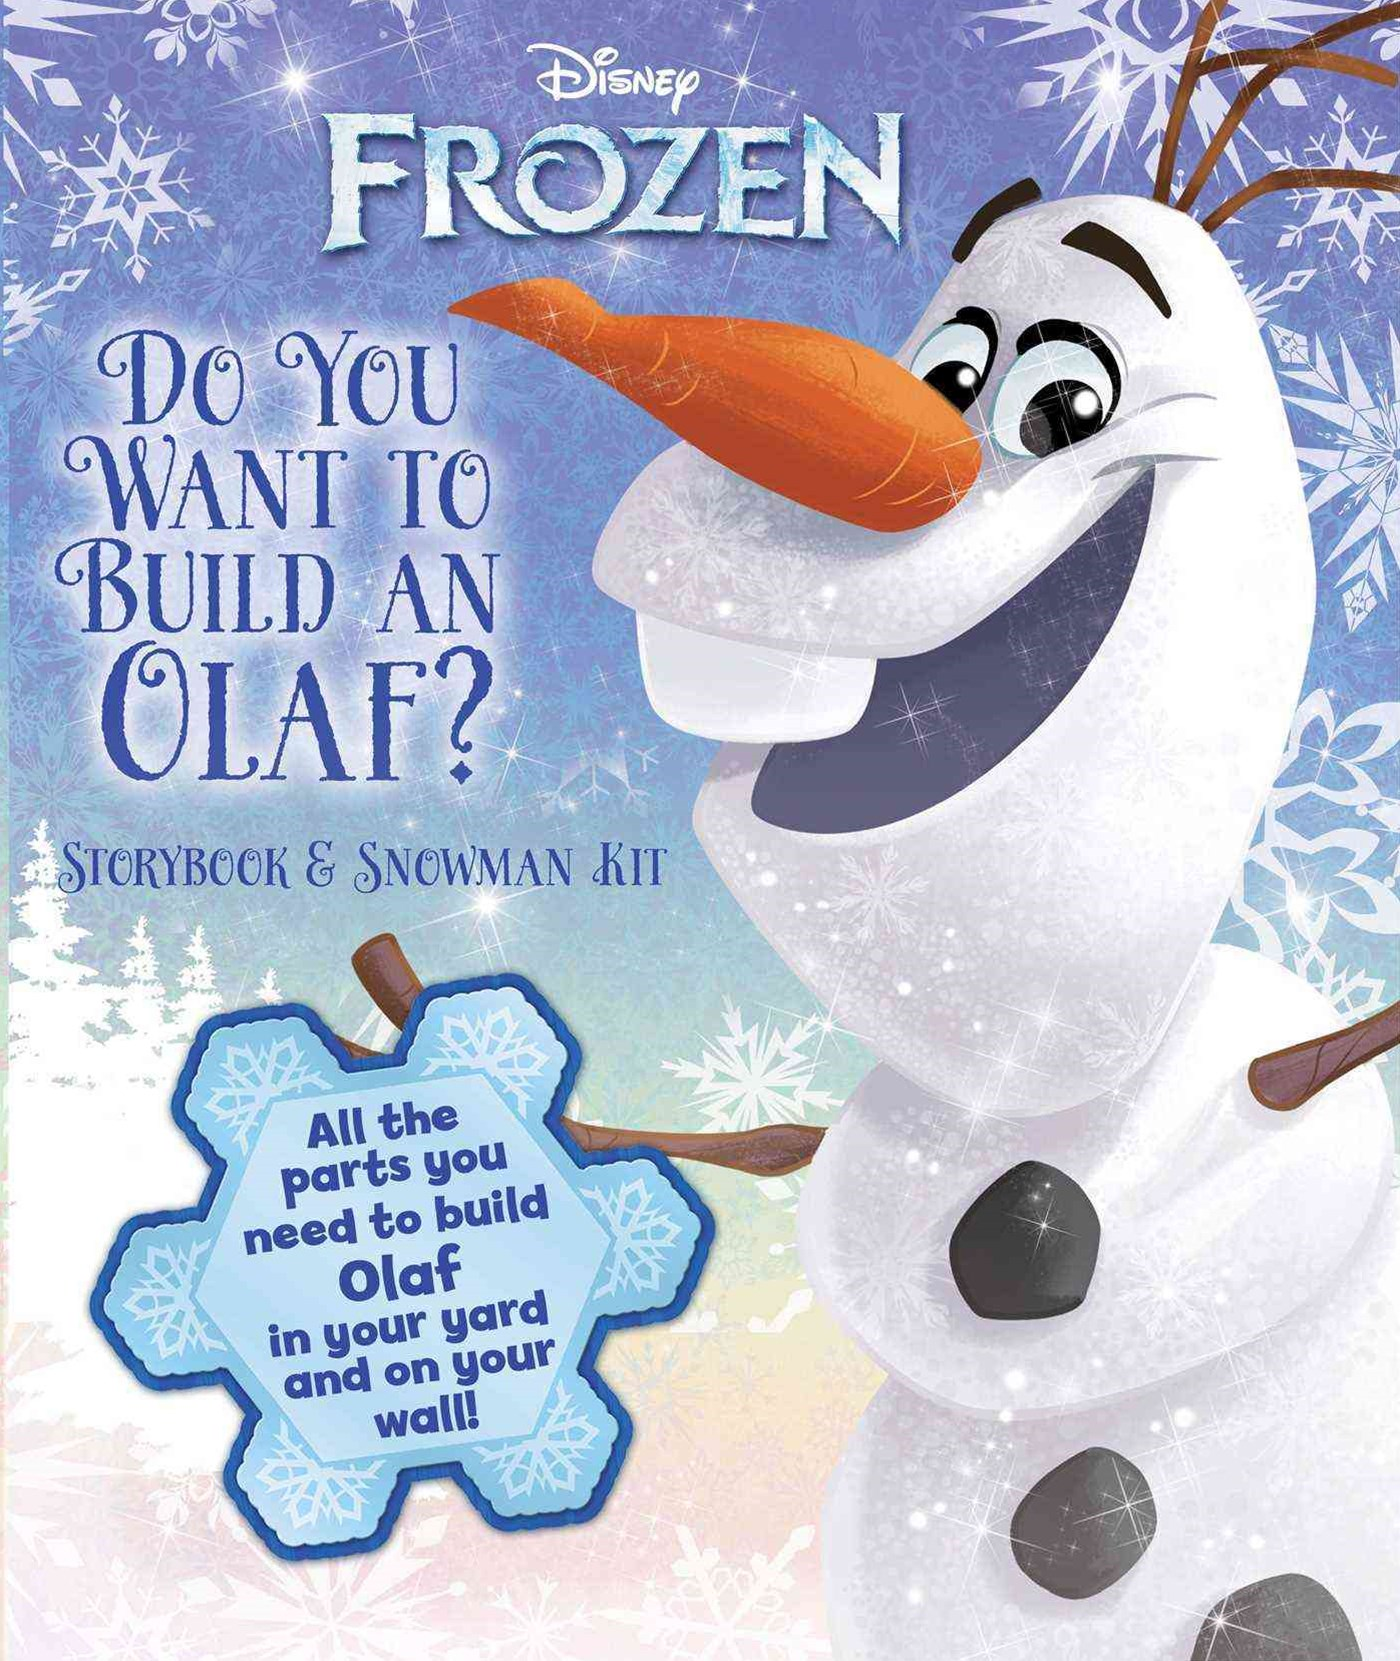 Disney Frozen - Do You Want to Build an Olaf?